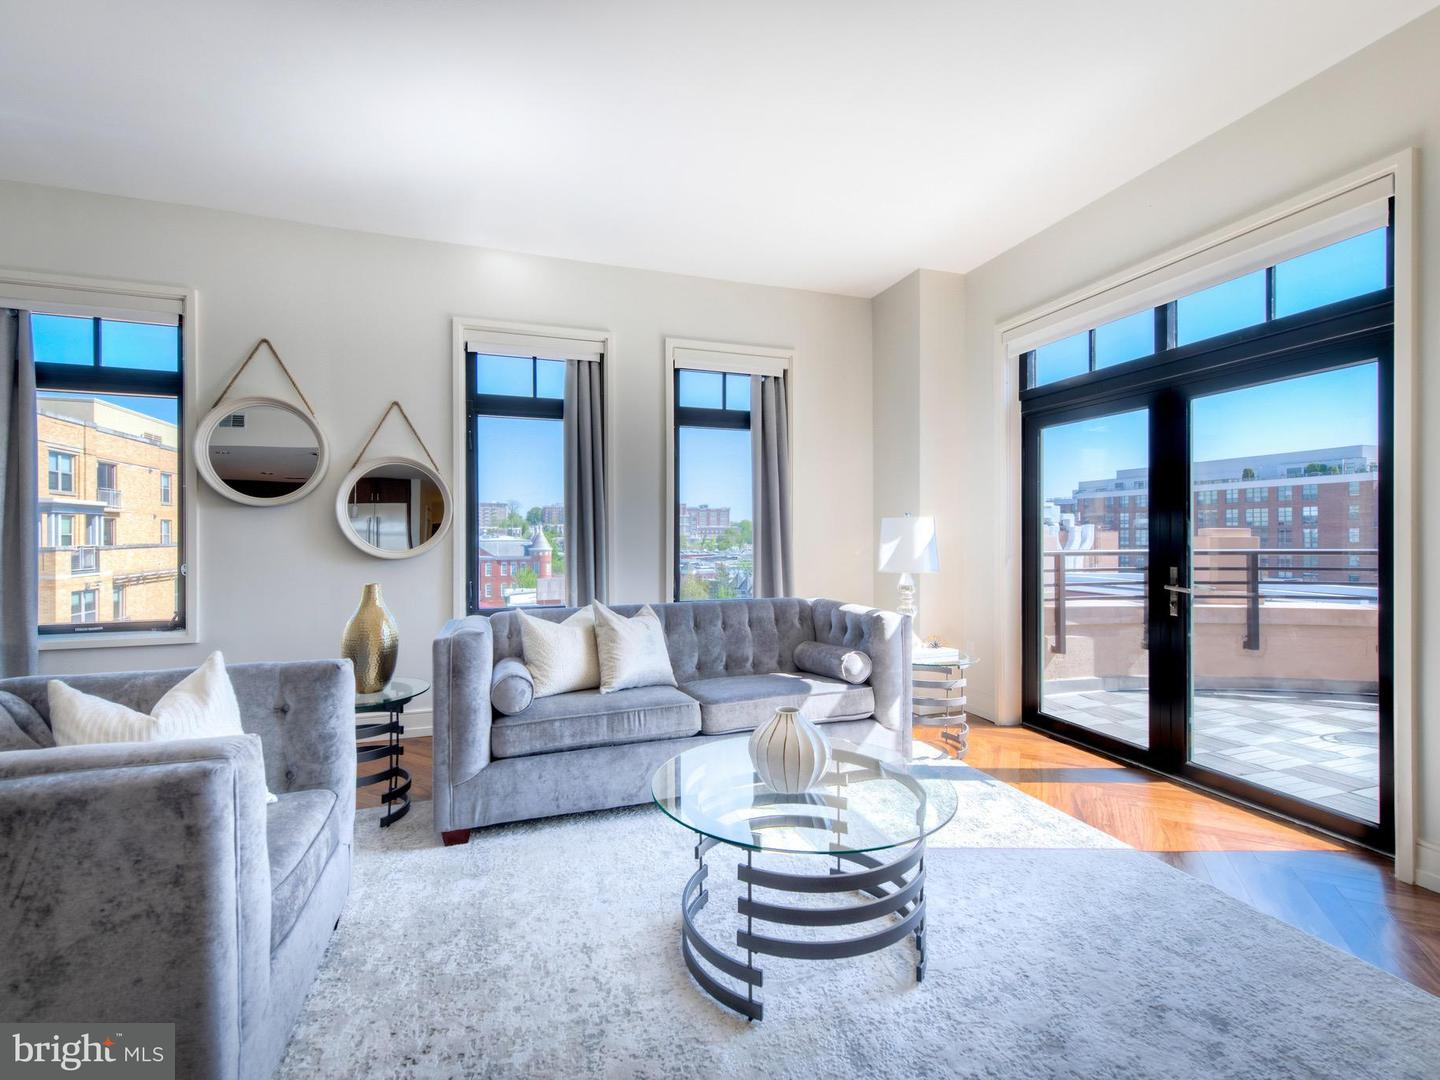 Other Residential for Rent at 1310 U St NW #709 Washington, District Of Columbia 20009 United States